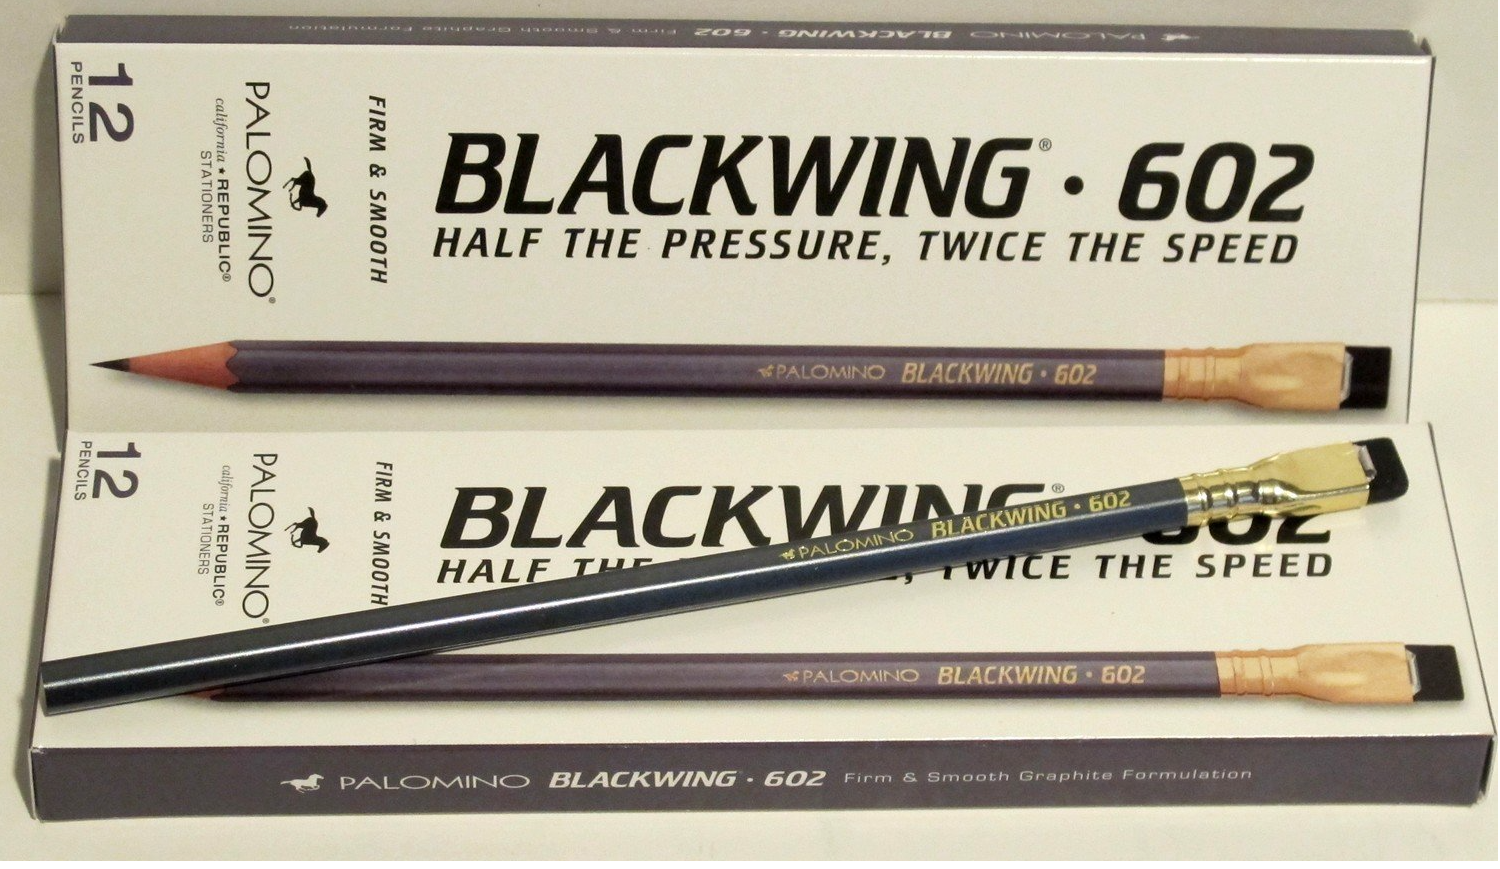 Just received a dozen  Blackwing 602 pencils . I bought them because they're what Stephen Sondheim uses and guess what? I LOVE THEM! Lovely to write with, dark enough to see but easy to erase with the attached eraser. Perfect pencil. Kids like them because the erasers make them look like little paintbrushes. I like the perfect balance and sexy color.   Highly recommended  .